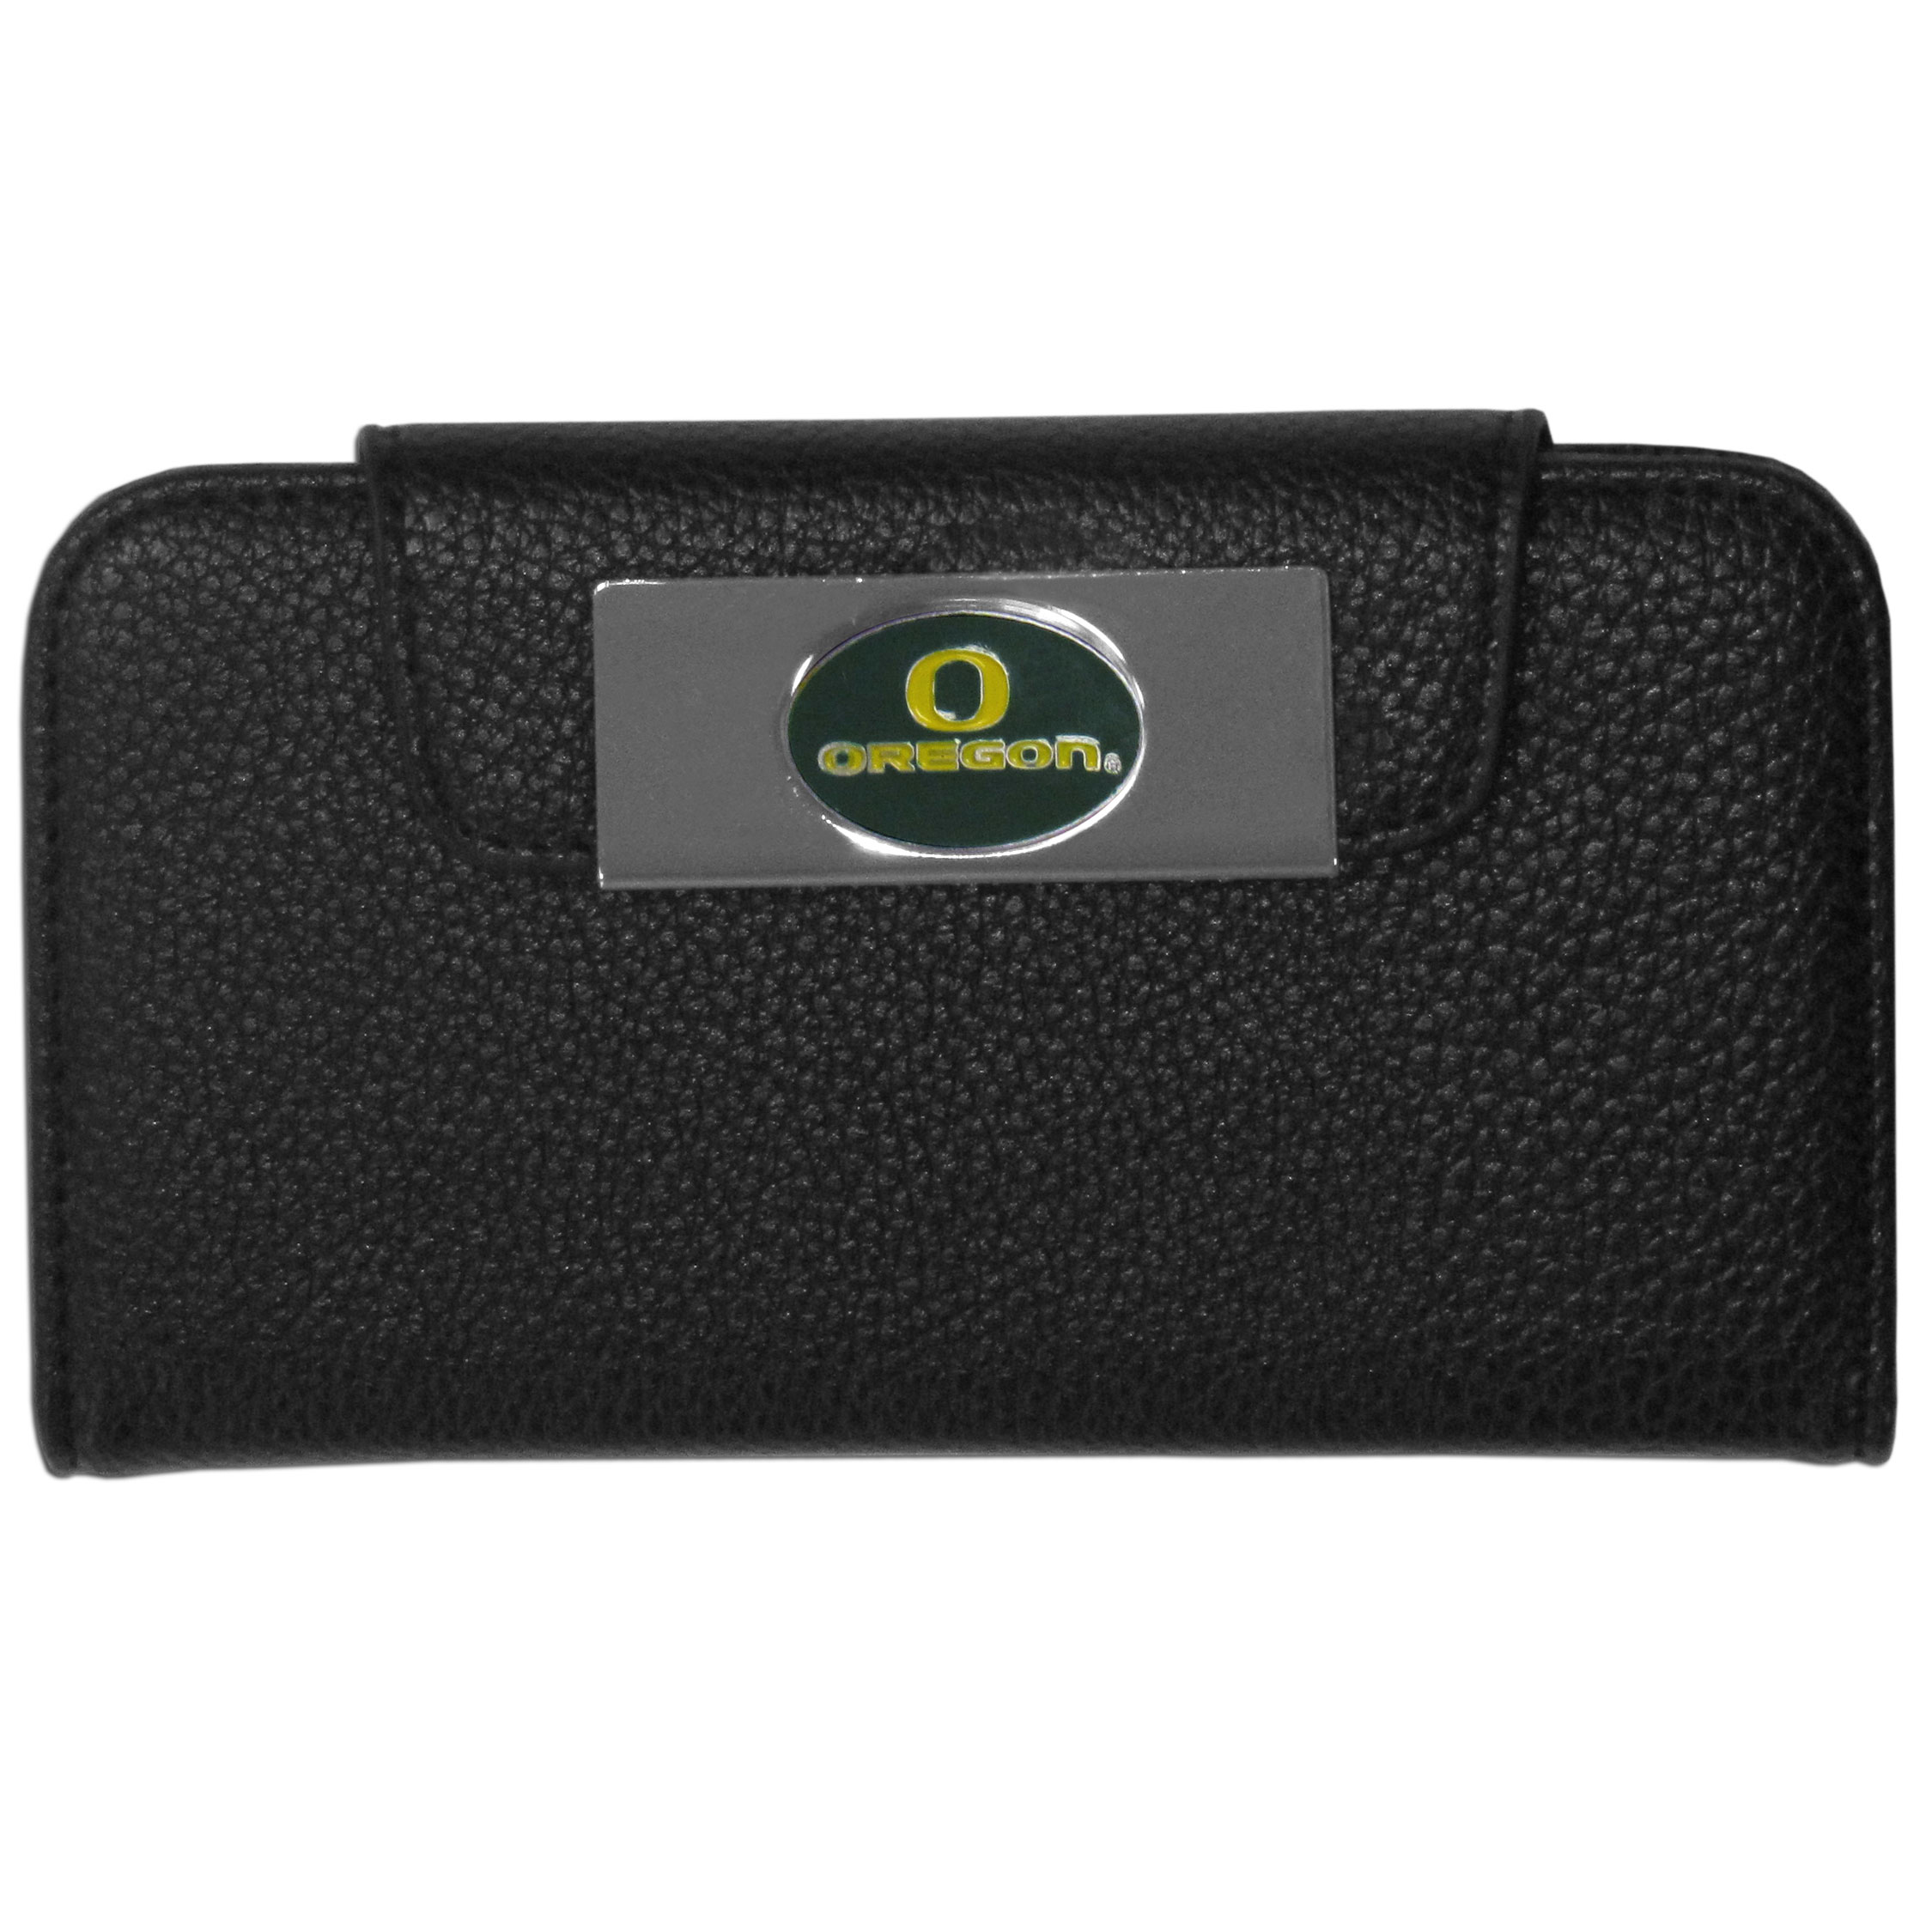 Oregon Ducks Samsung Galaxy S4 Wallet Case - This new & wildly popular case is ideal for those who like to travel light! The stylish case has an inner hard shell that securely holds your phone while allowing complete access to the phone's functionality. The flip cover has slots for credit cards, business cards and identification. The magnetic flip cover has a metal Oregon Ducks emblem on a high polish chrome backing. Fits the Samsung Galaxy S4